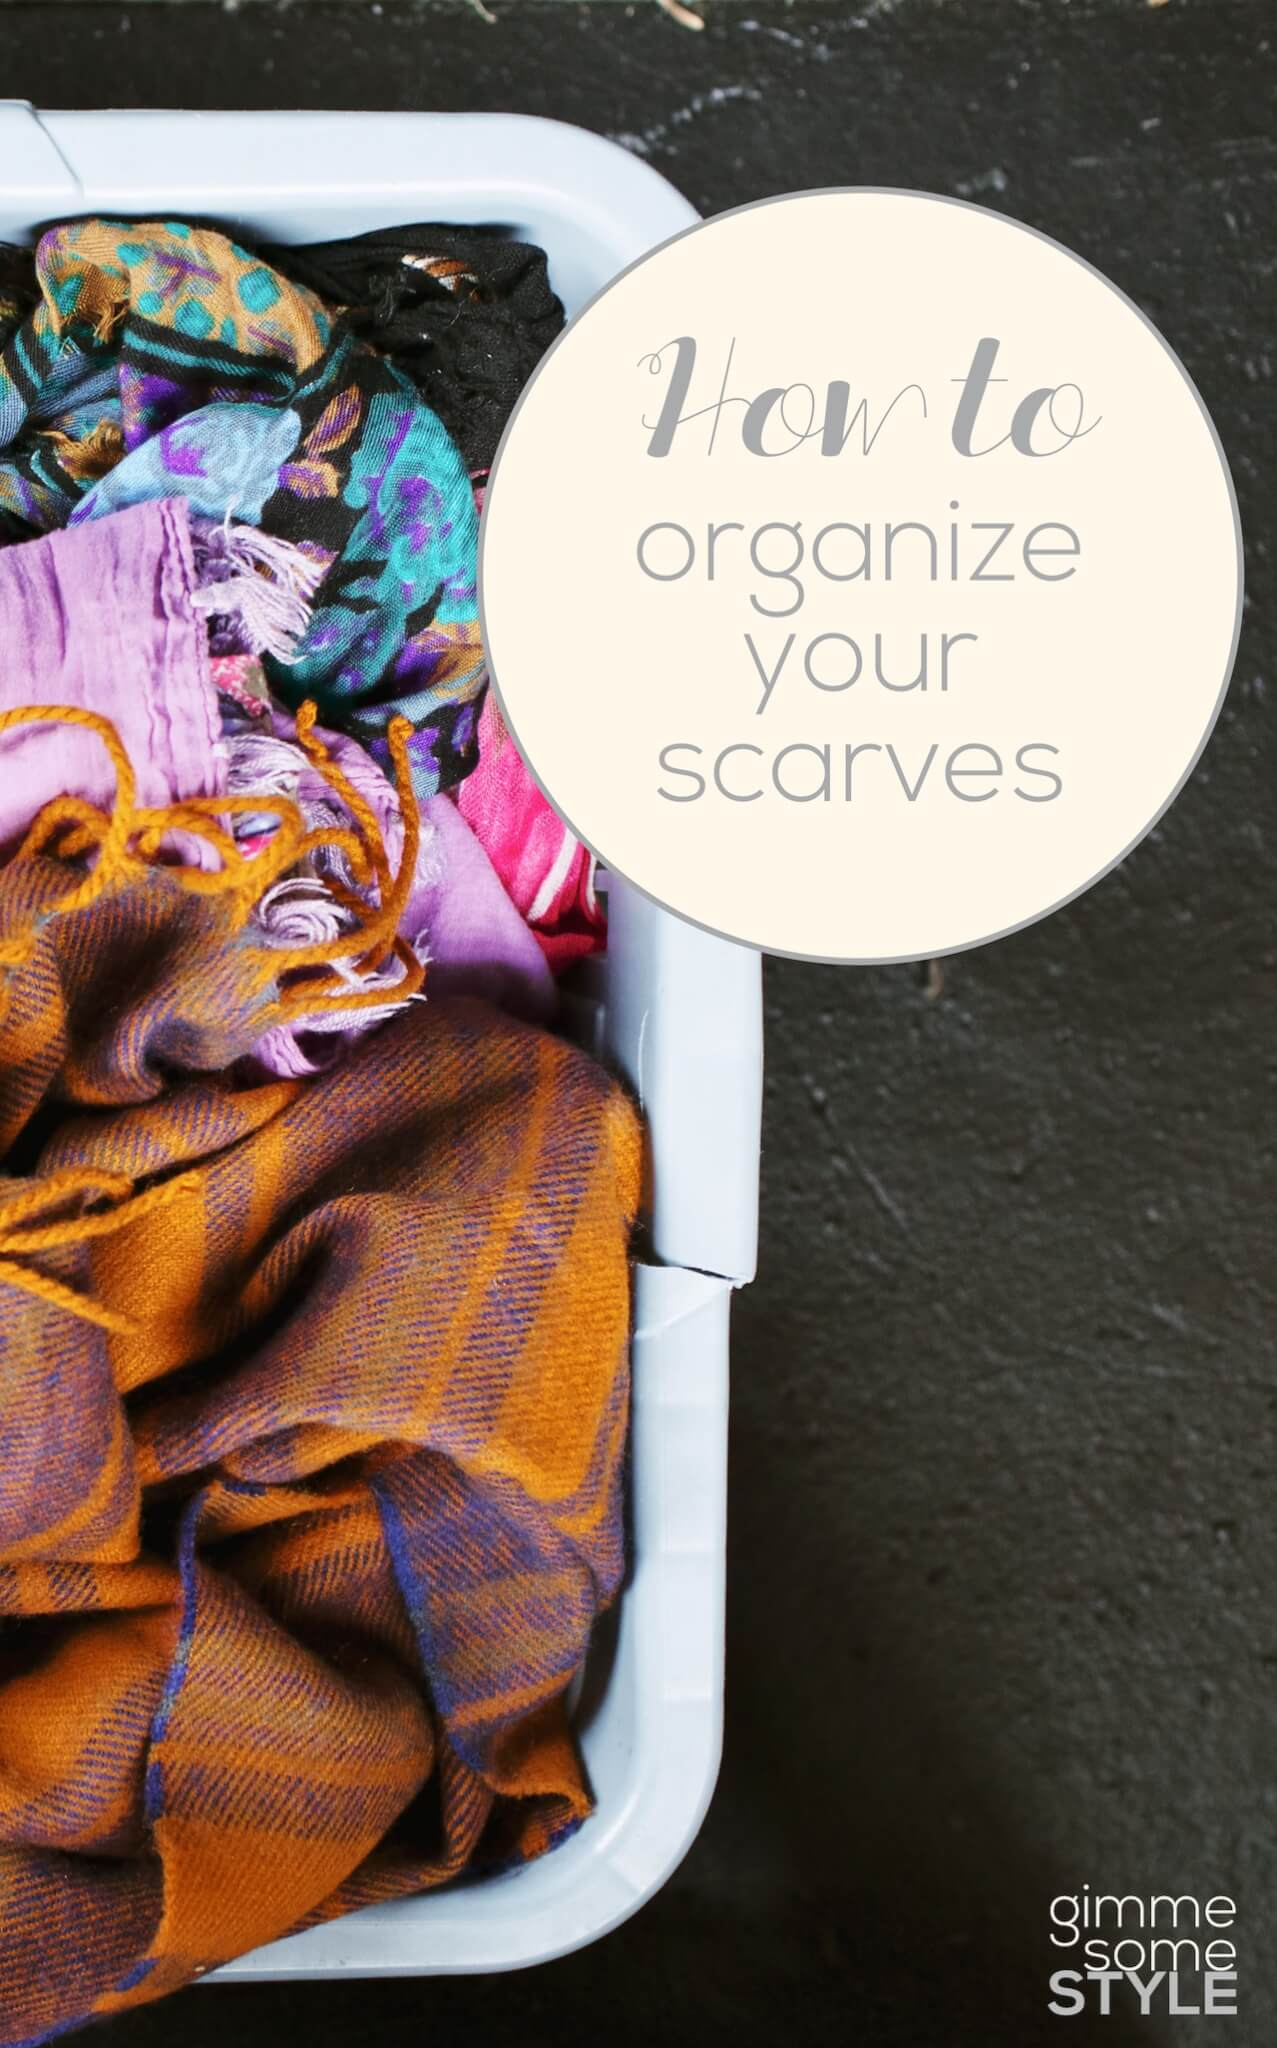 how to organize your scarves gimme some style